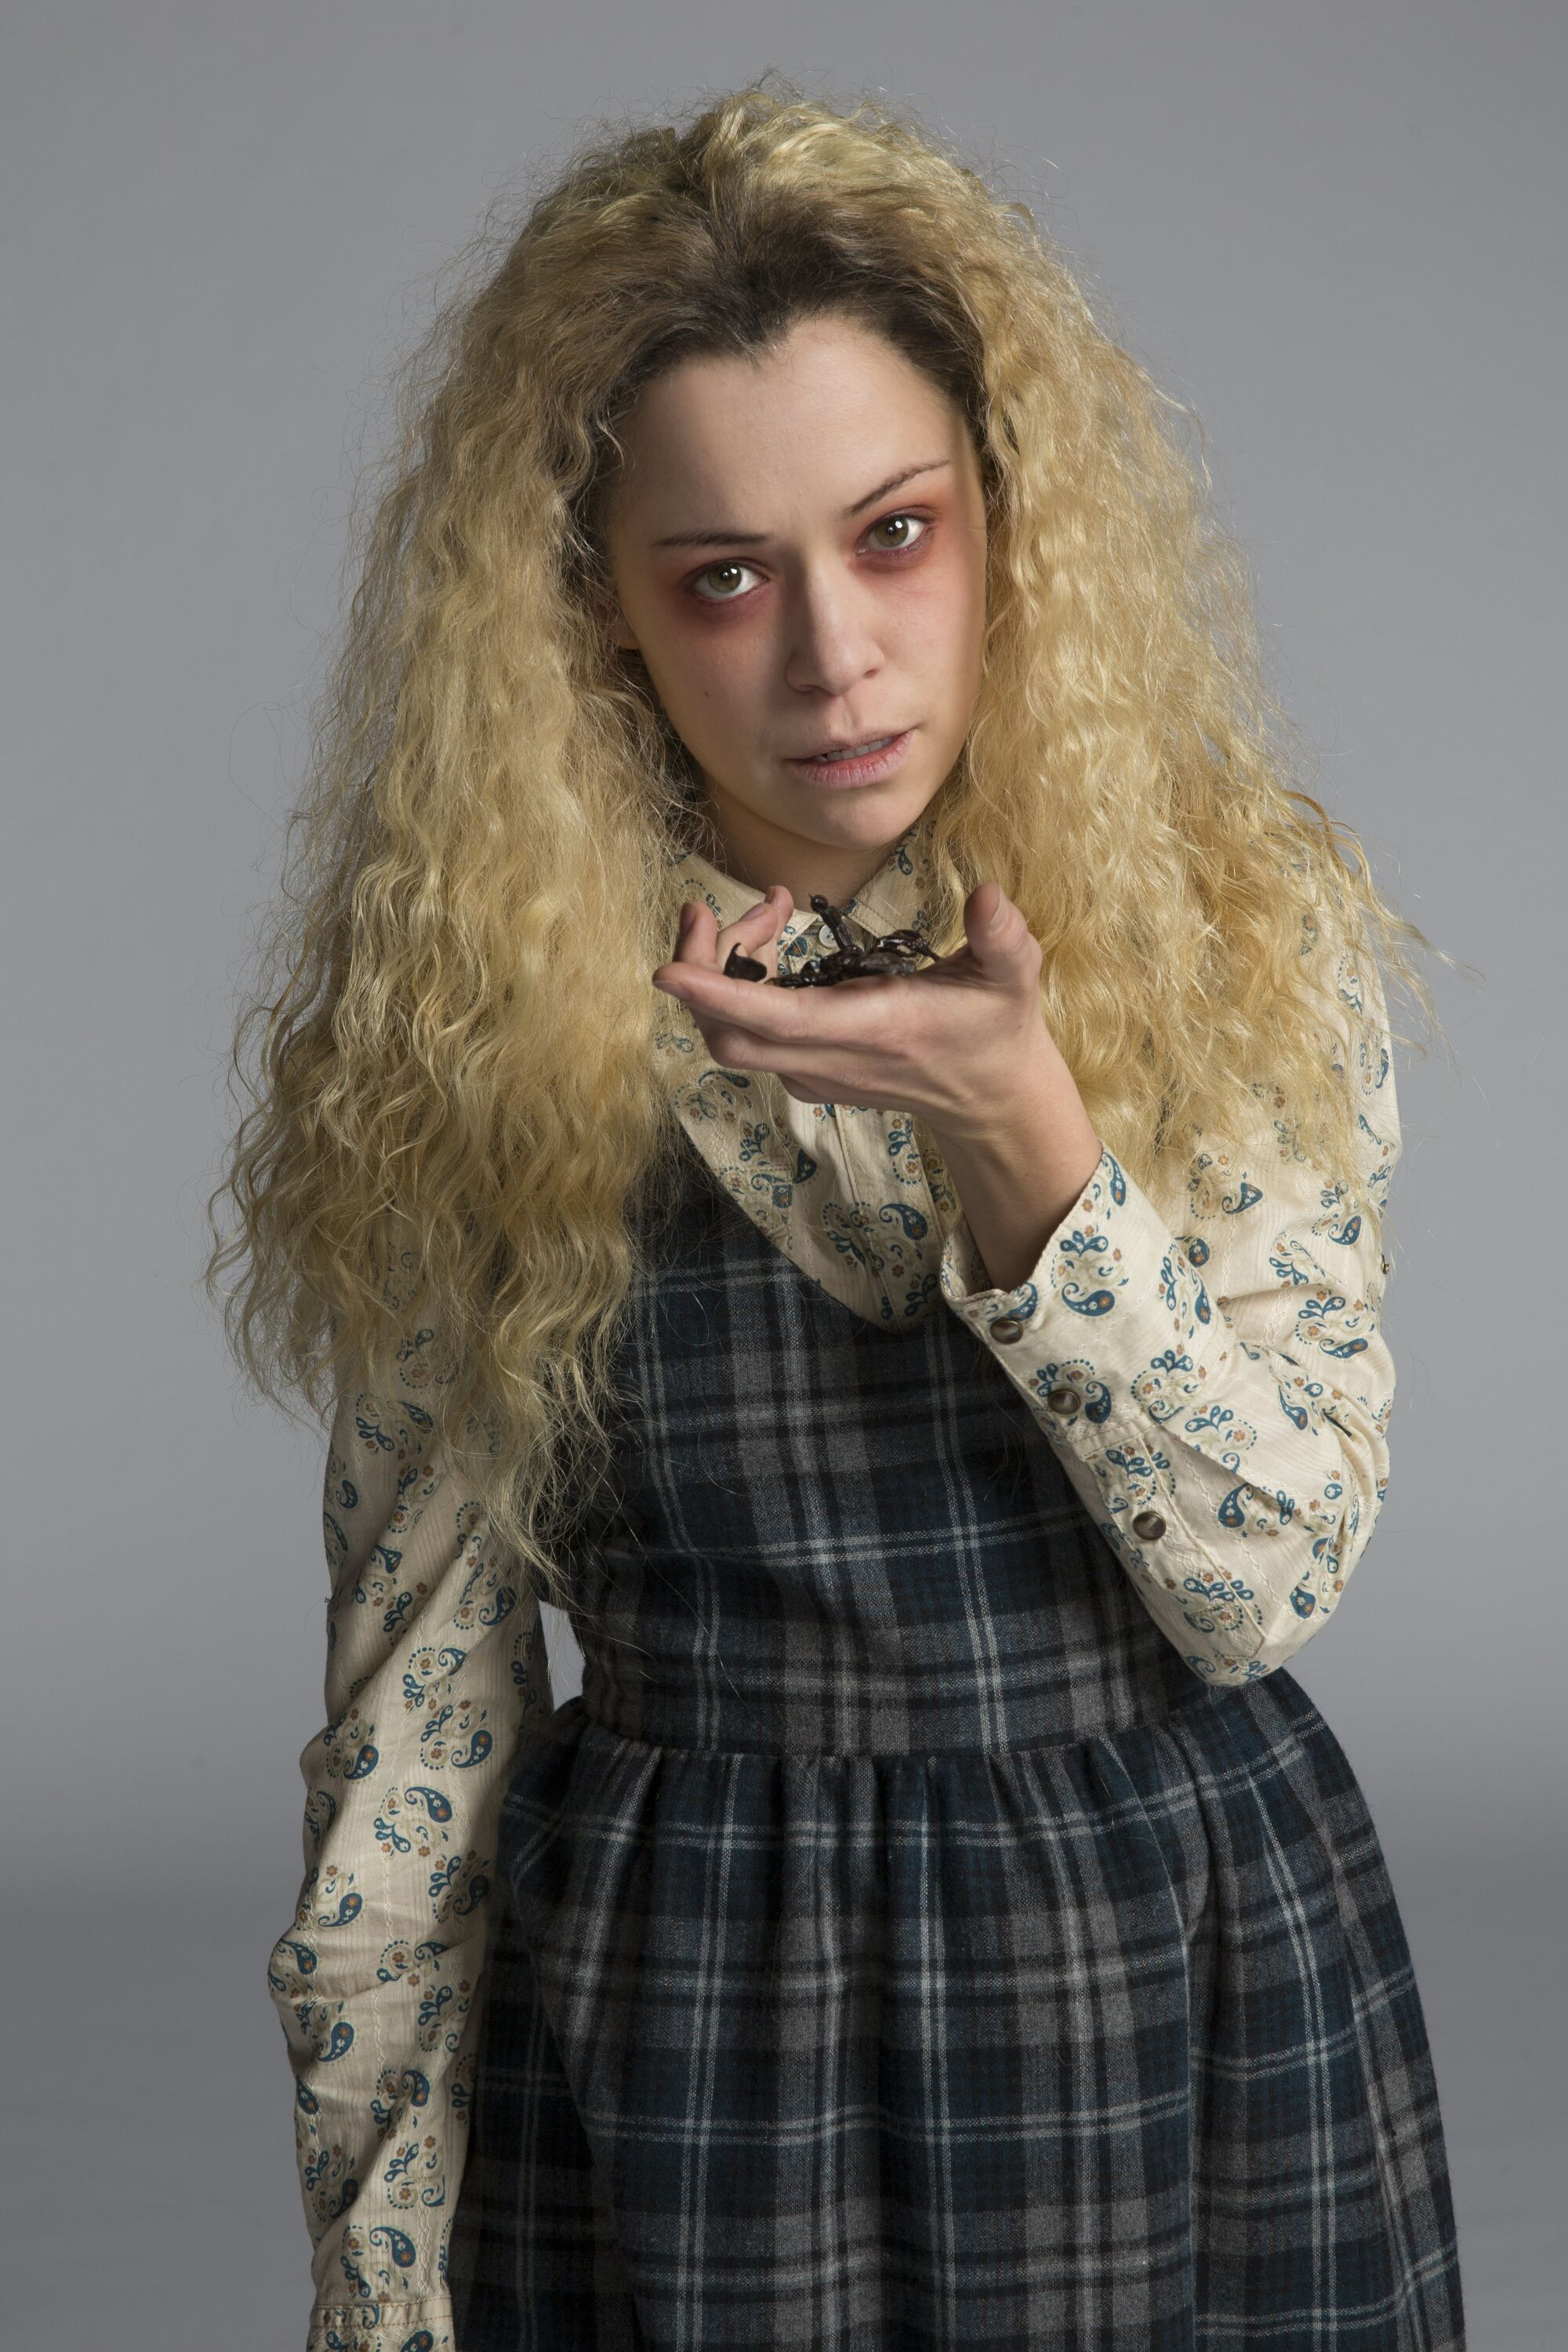 Helena | Orphan Black Wiki | FANDOM powered by Wikia